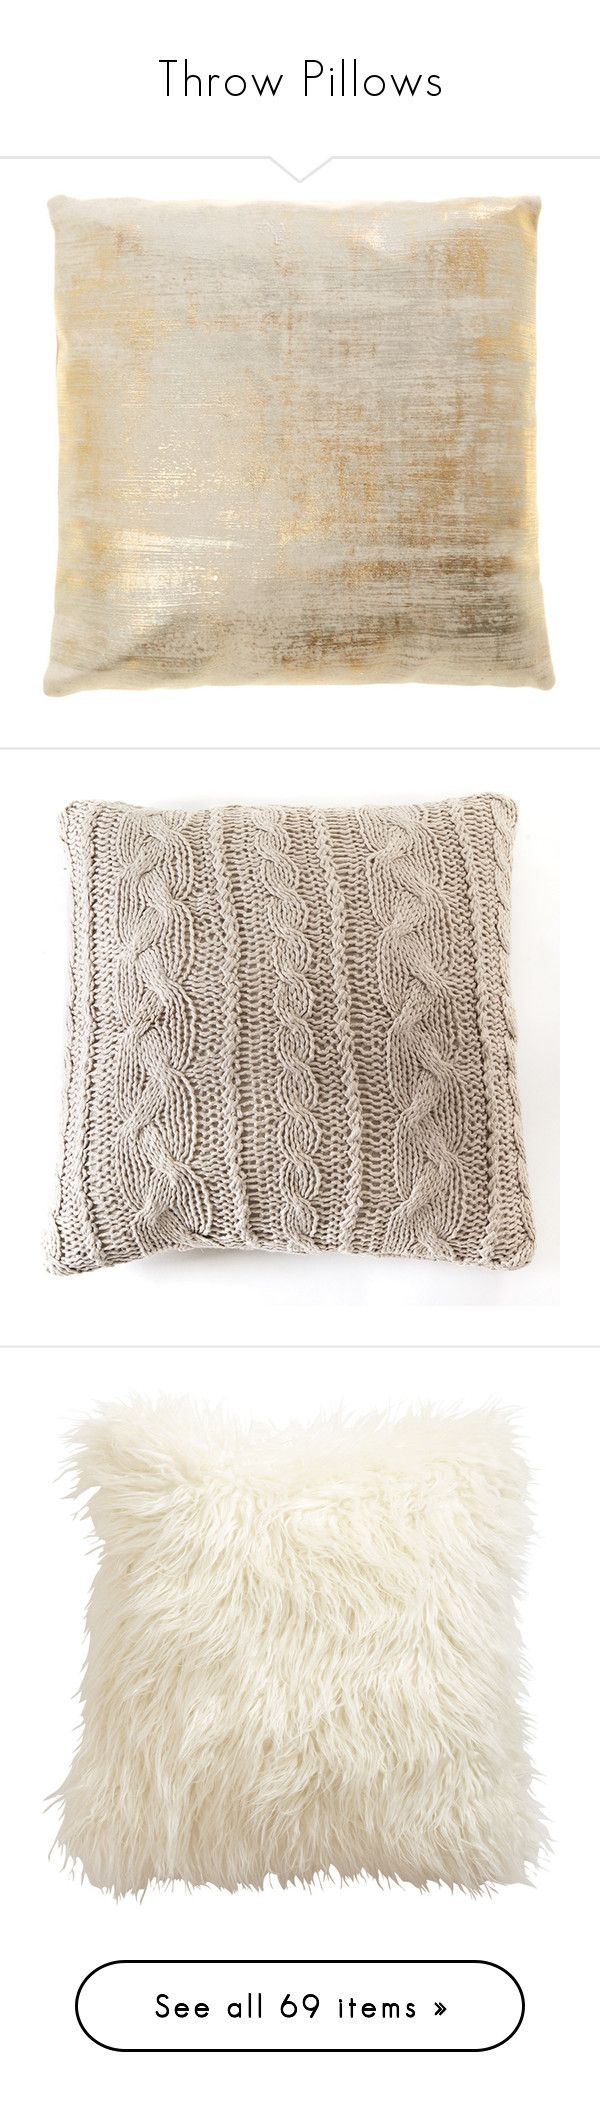 I want some throw pillows like these for my room